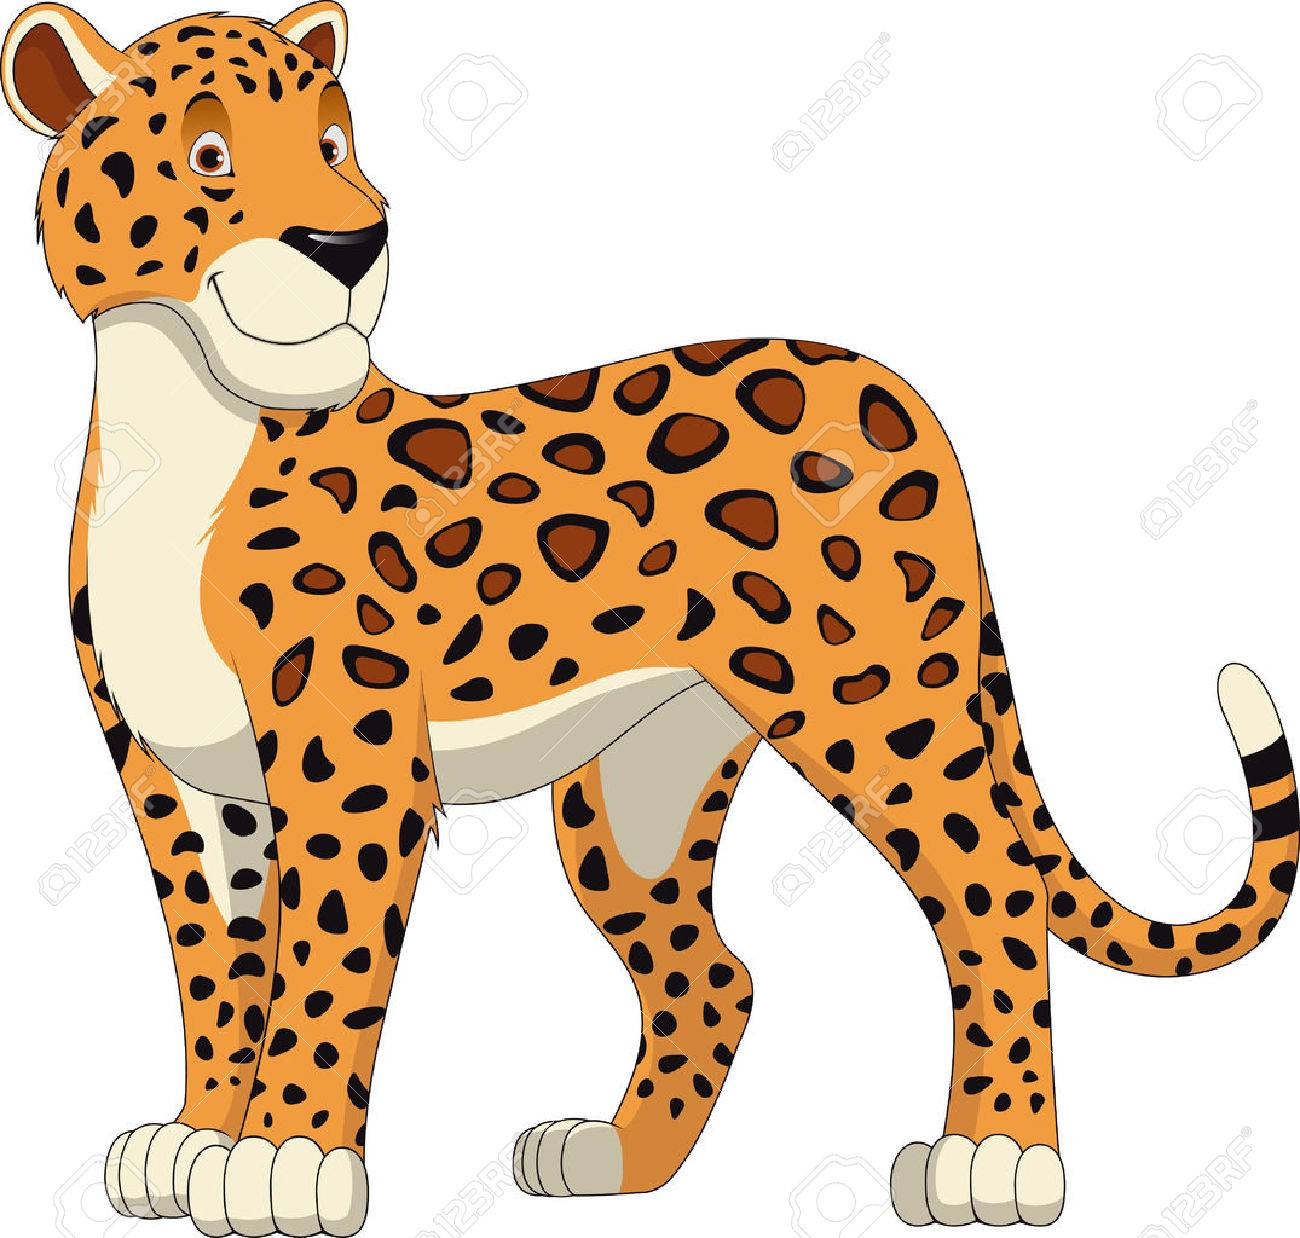 4 895 jaguar stock illustrations cliparts and royalty free jaguar rh 123rf com leopard clipart images leopard clip art free